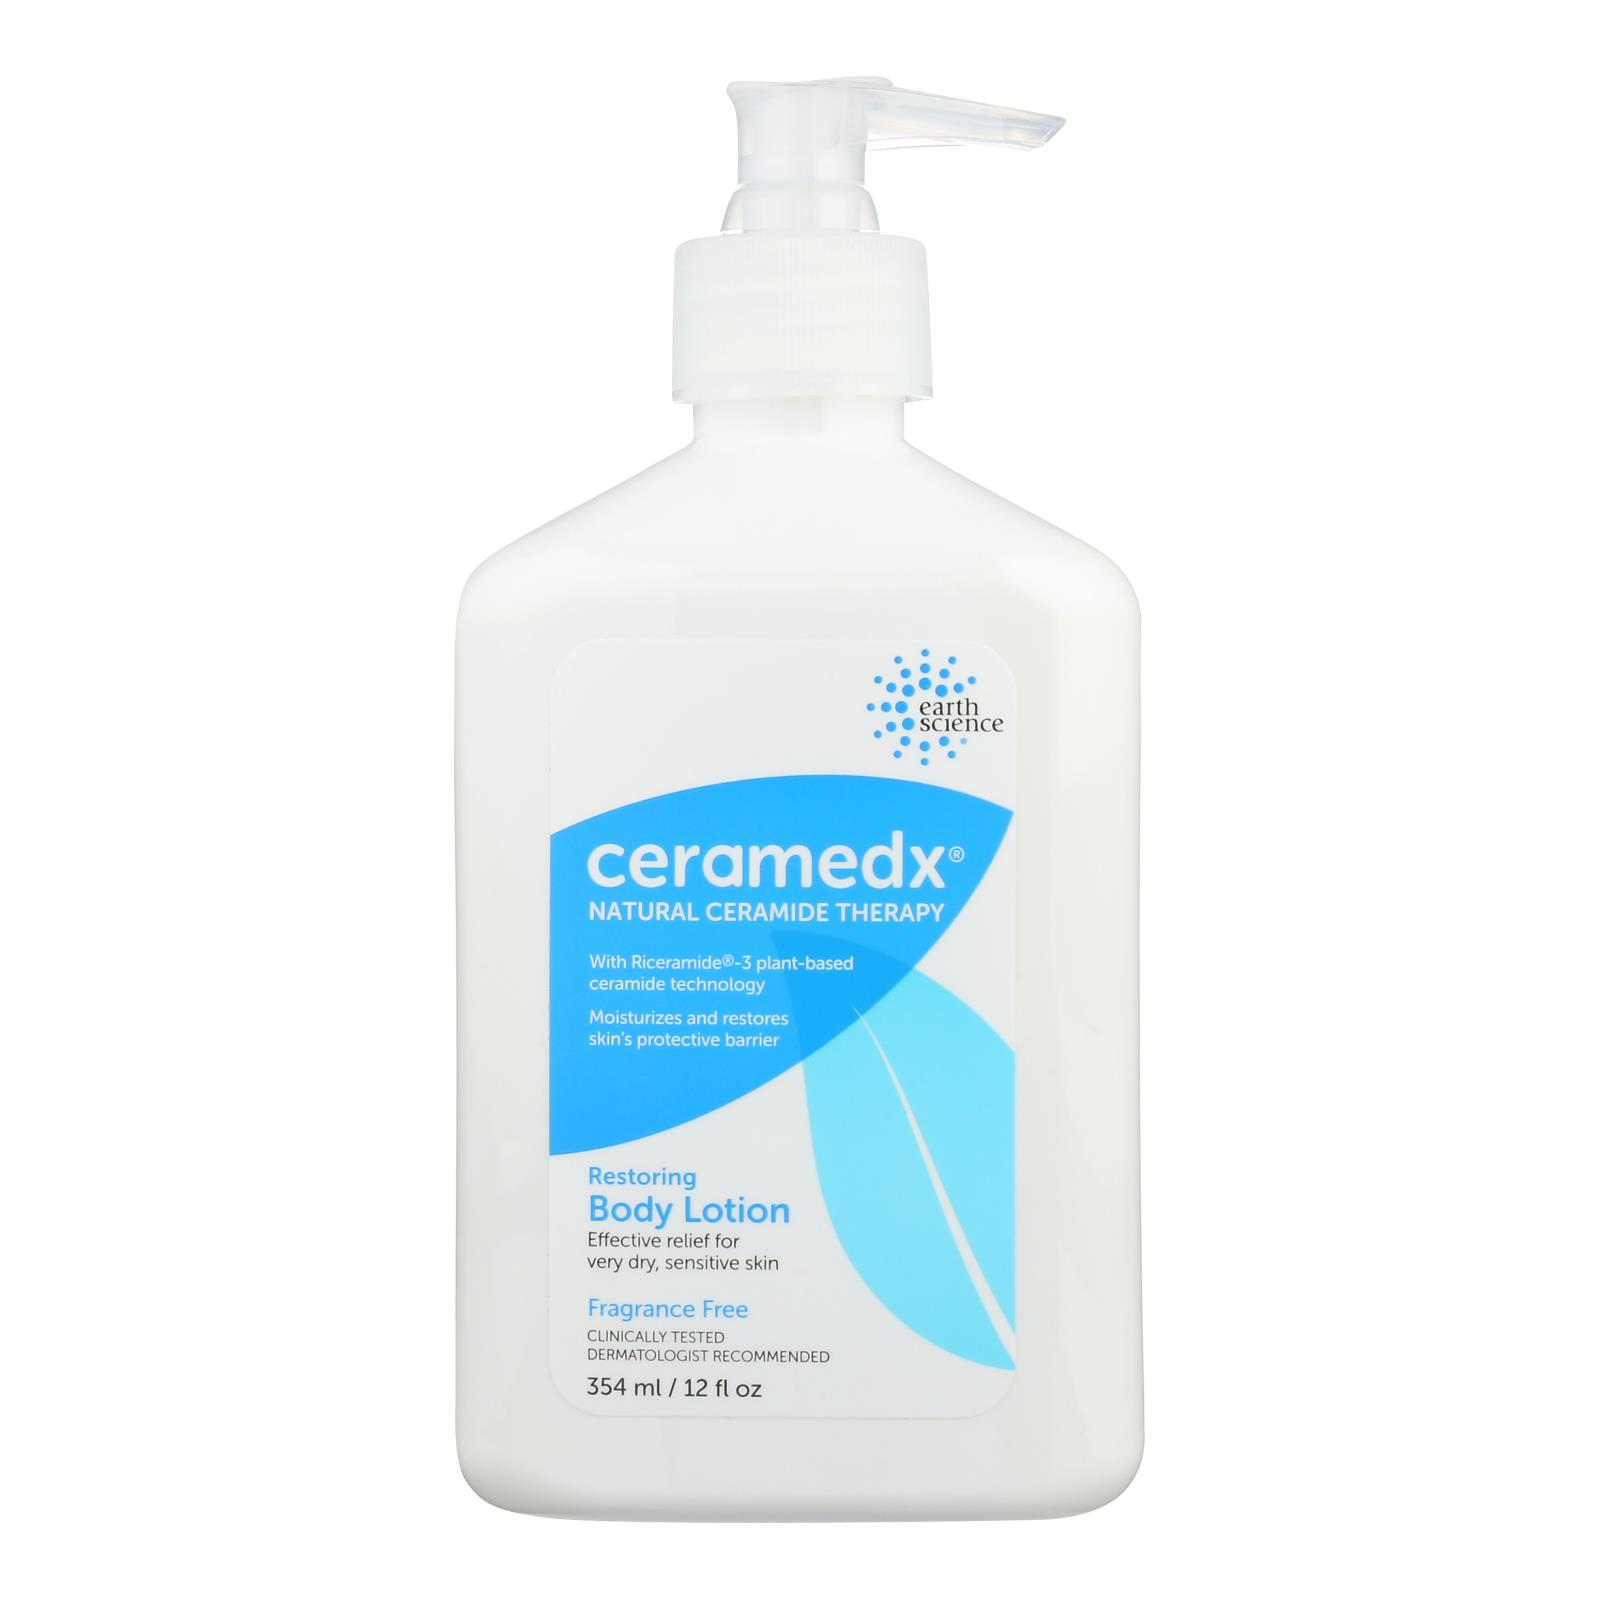 Ceramedx - Restoring Body Lotion - 12 fl oz.